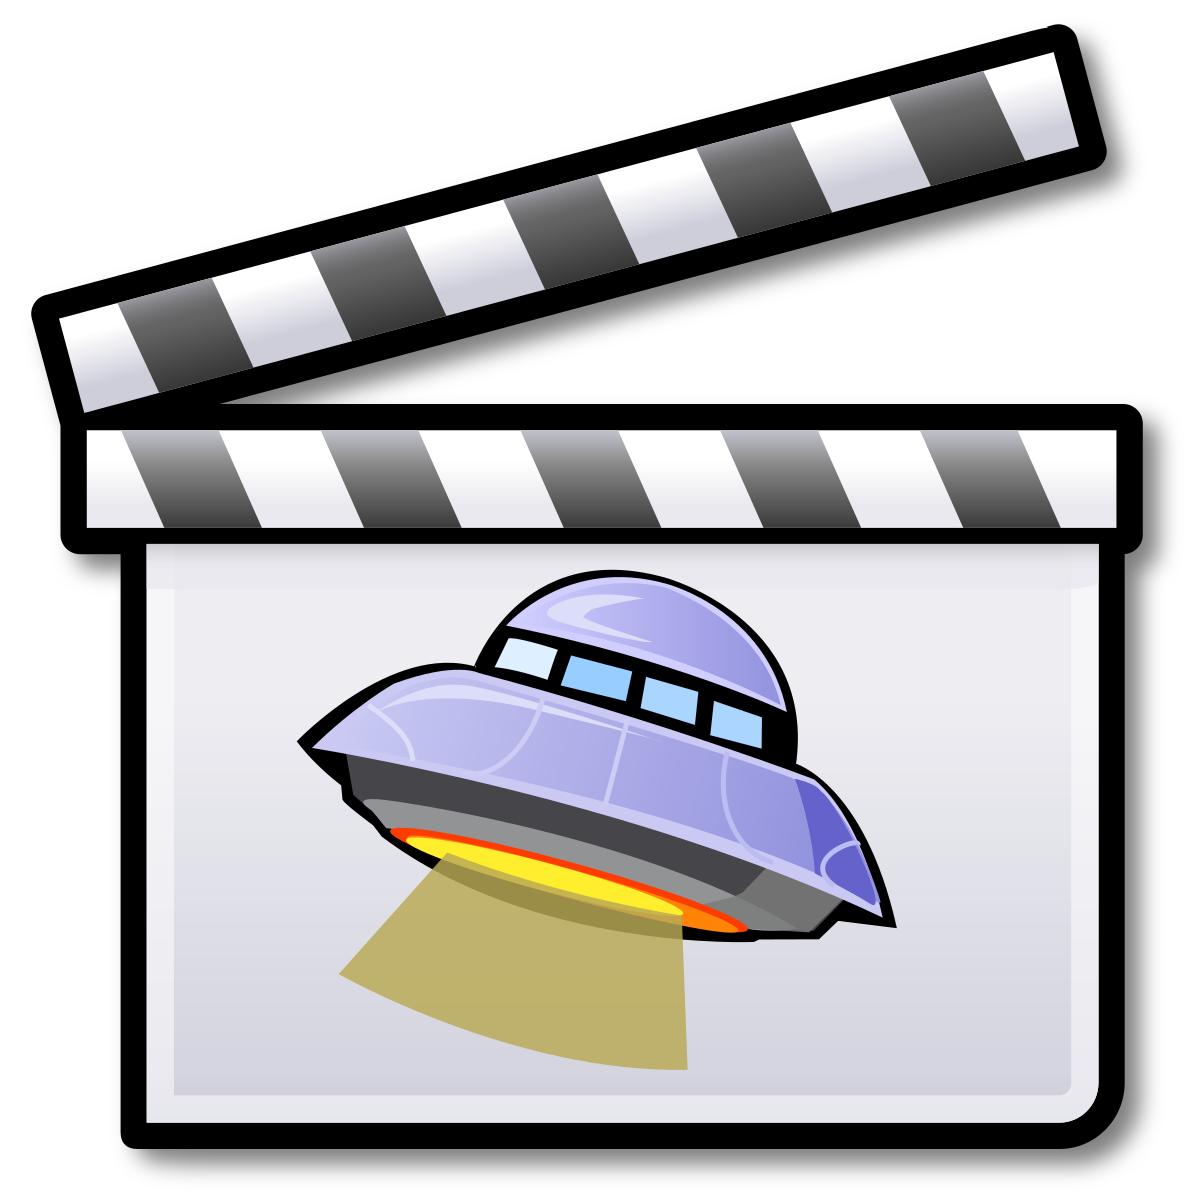 Spaceship clipart move. List of science fiction